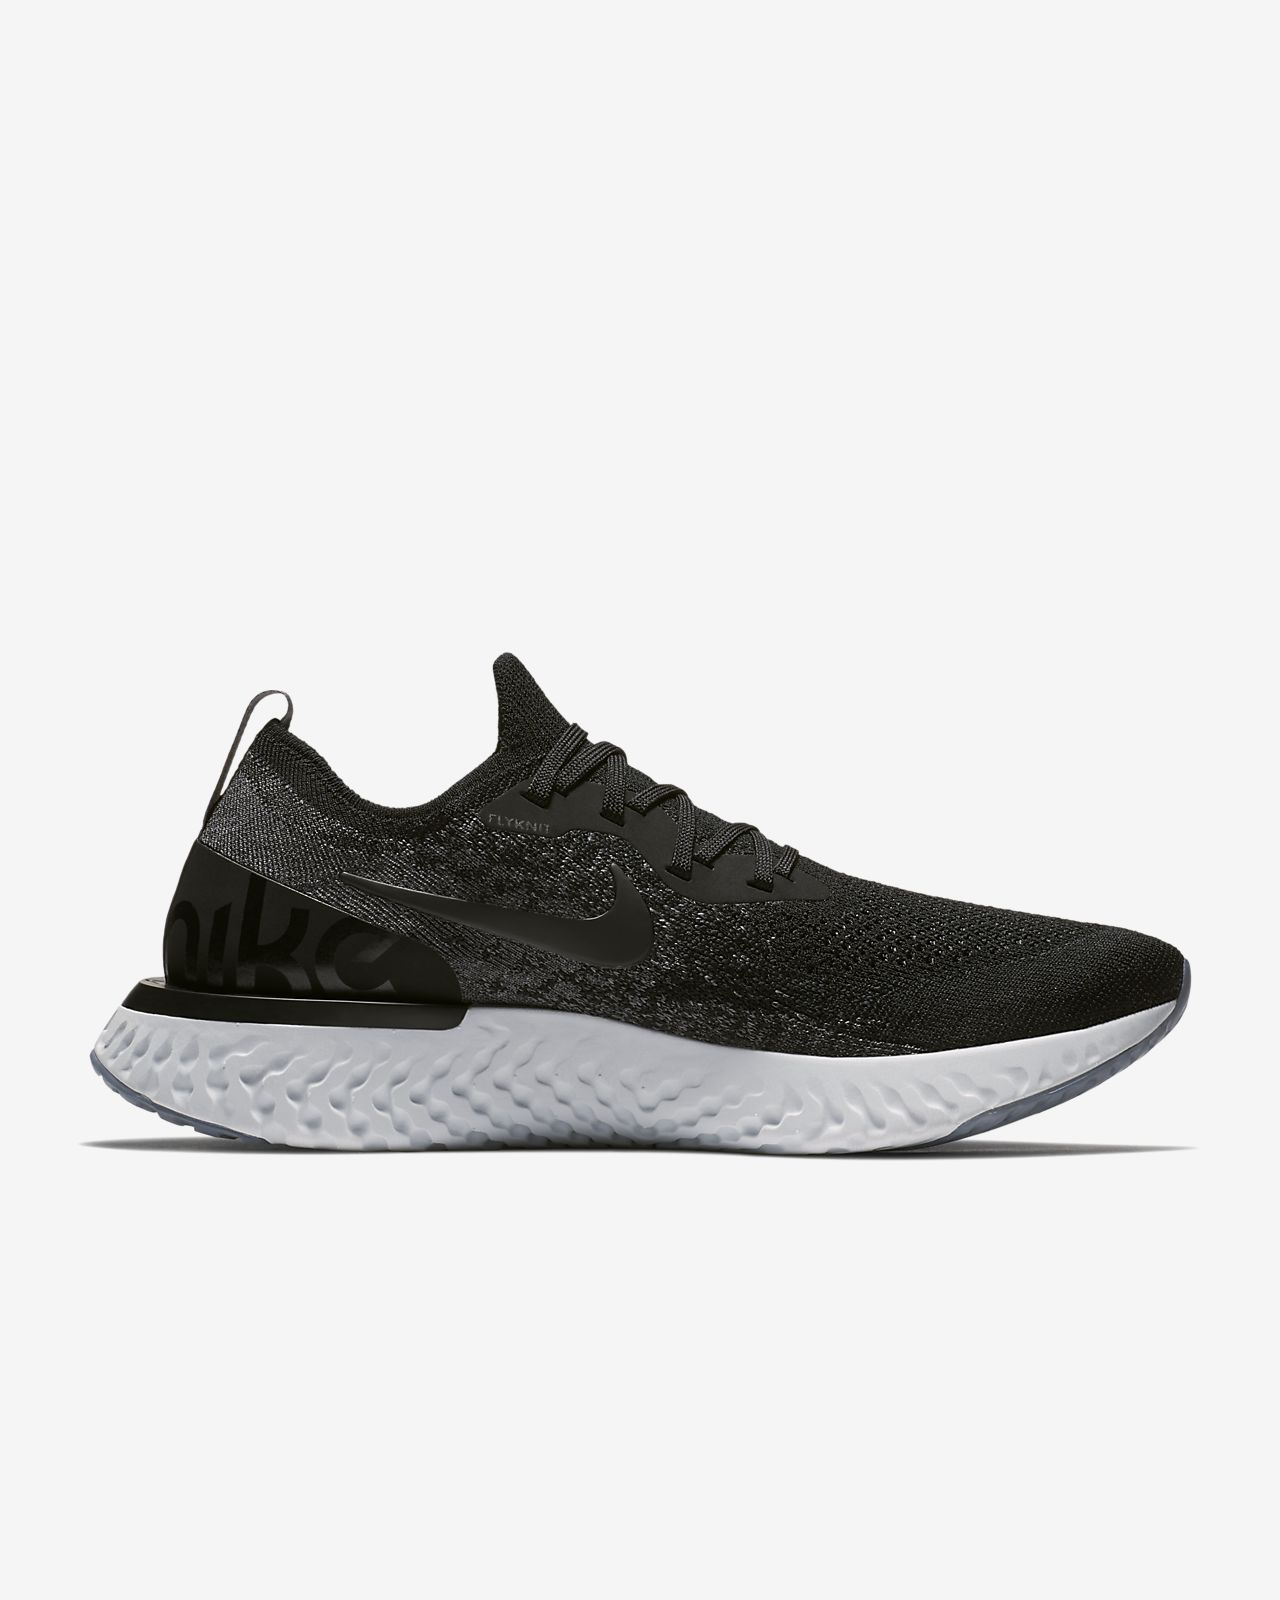 ... Chaussure de running Nike Epic React Flyknit pour Homme